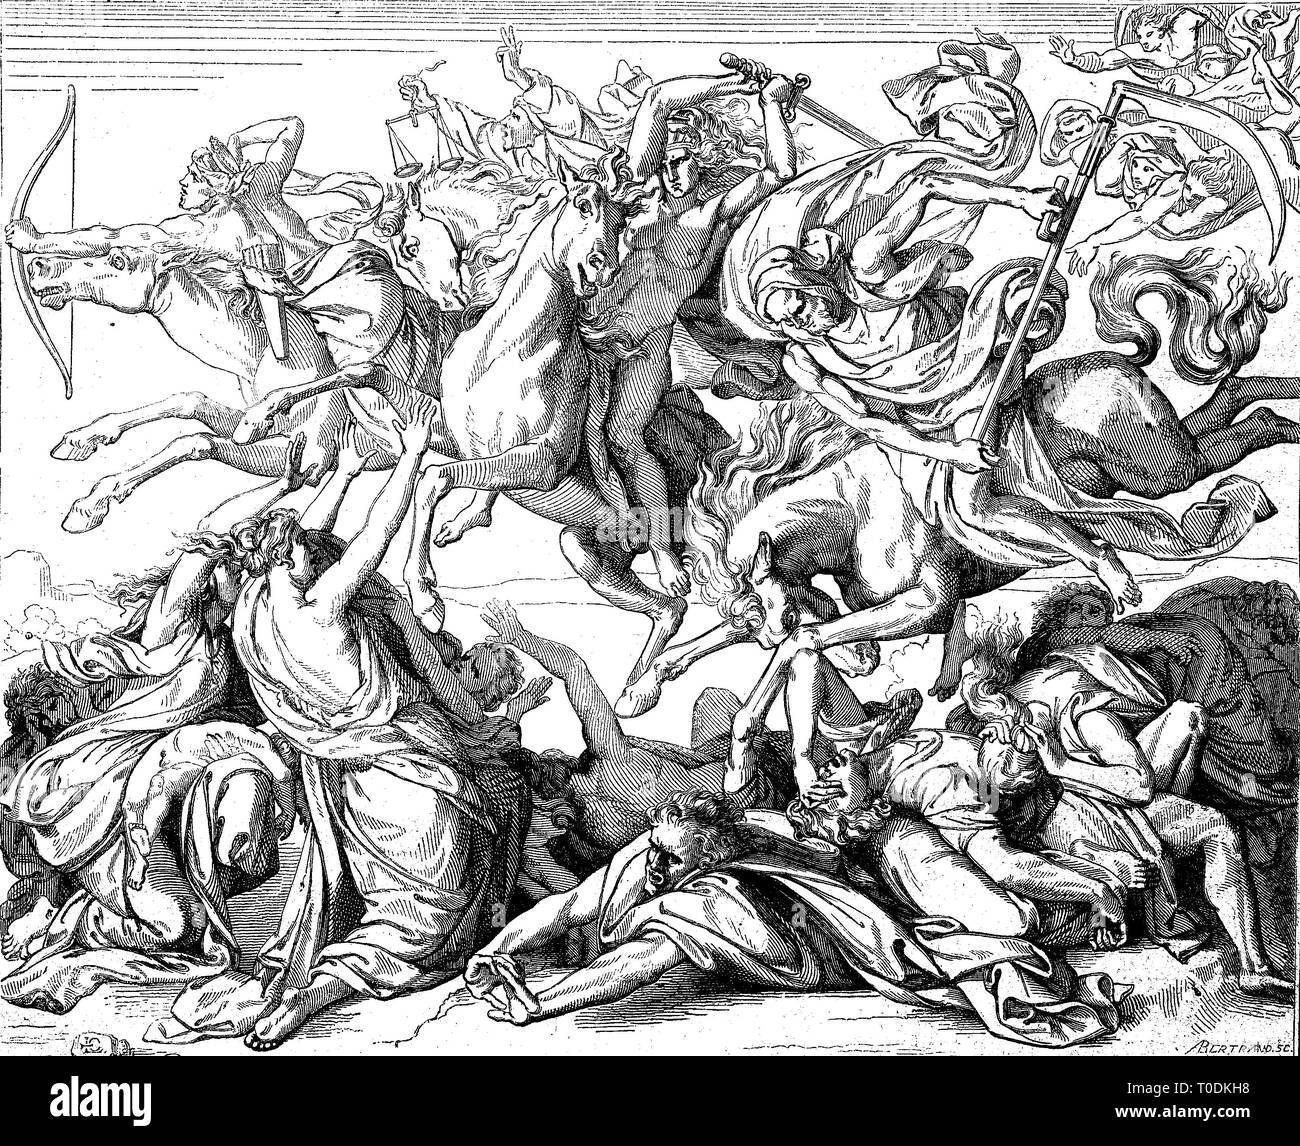 Digital improved reproduction, Four Horsemen of the Apocalypse are described in the last book of the New Testament of the Bible, the Book of Revelation by John of Patmos, original woodprint from th 19th century - Stock Image